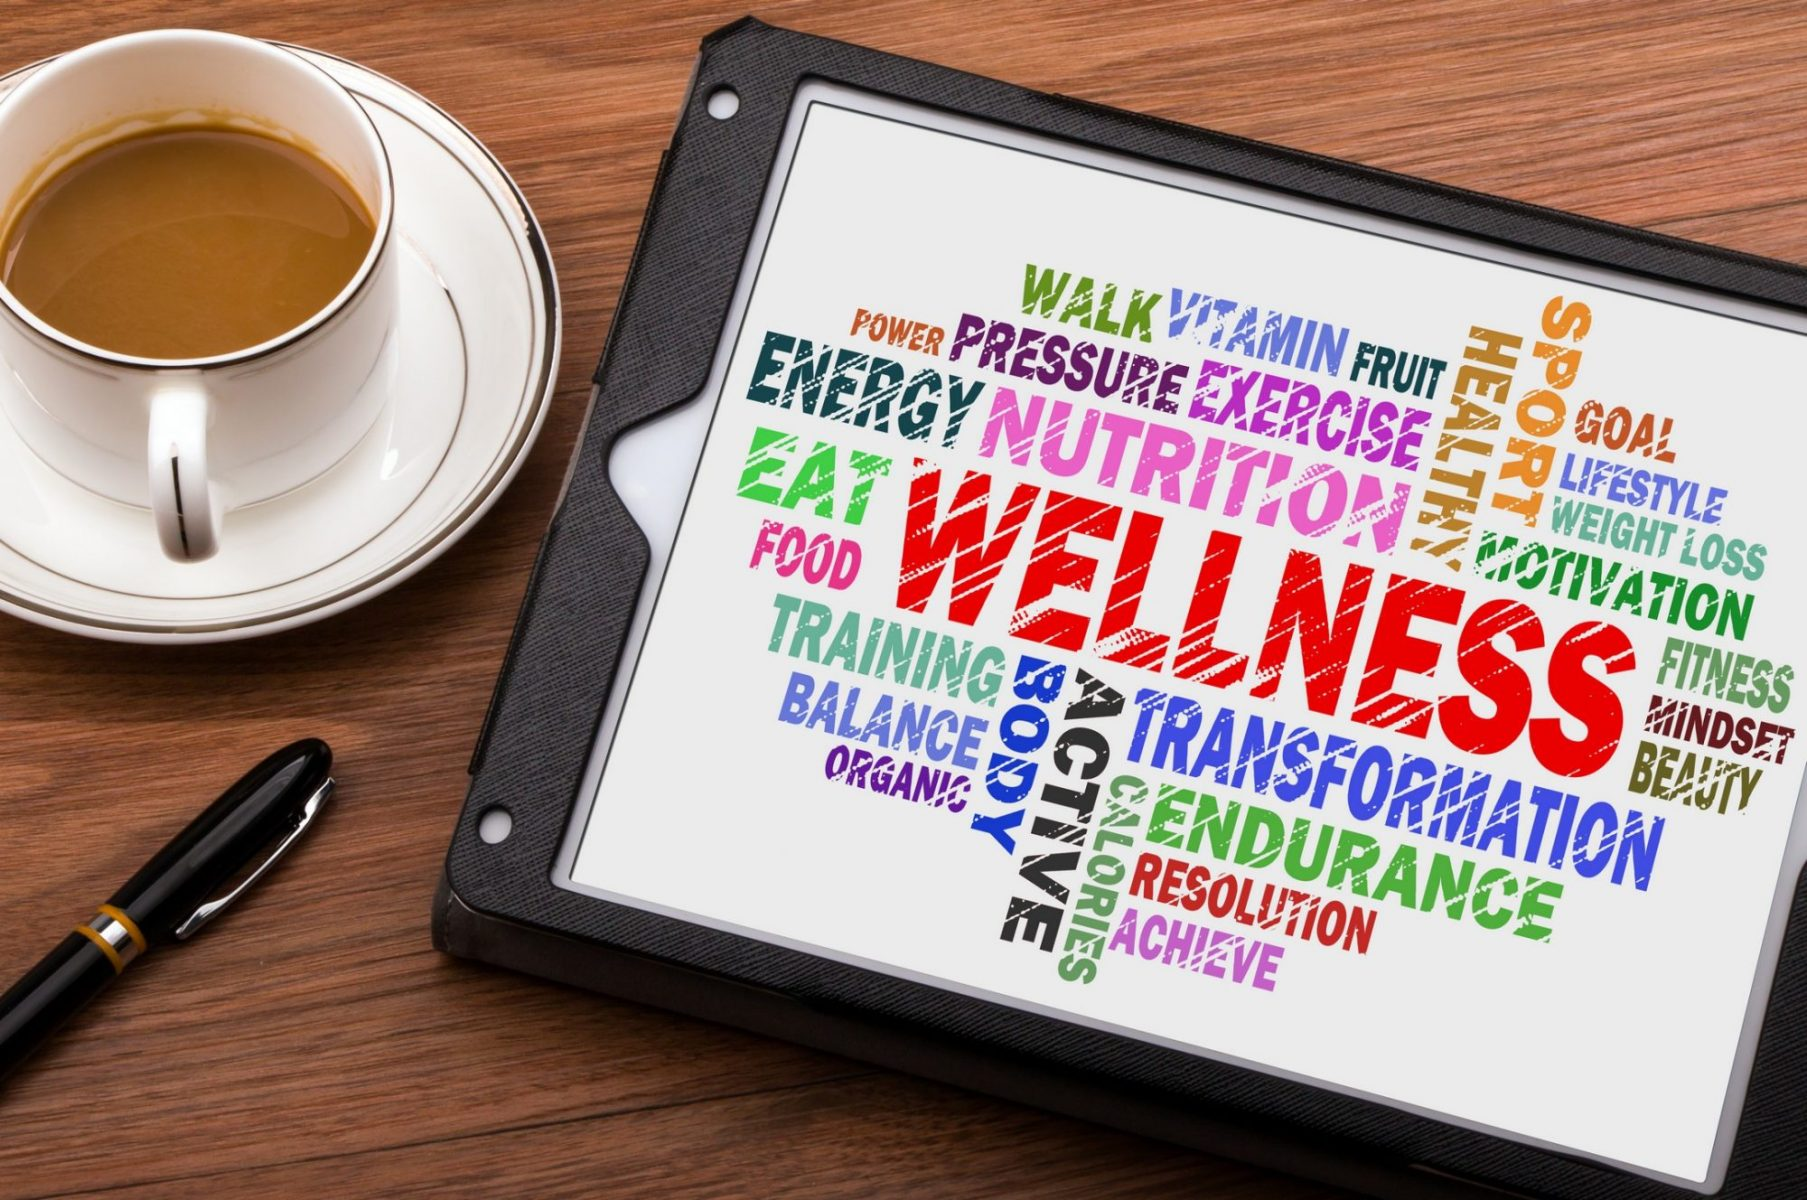 Houston Promote Productivity   Health and Wellness   Vending Service   Break Room Solutions